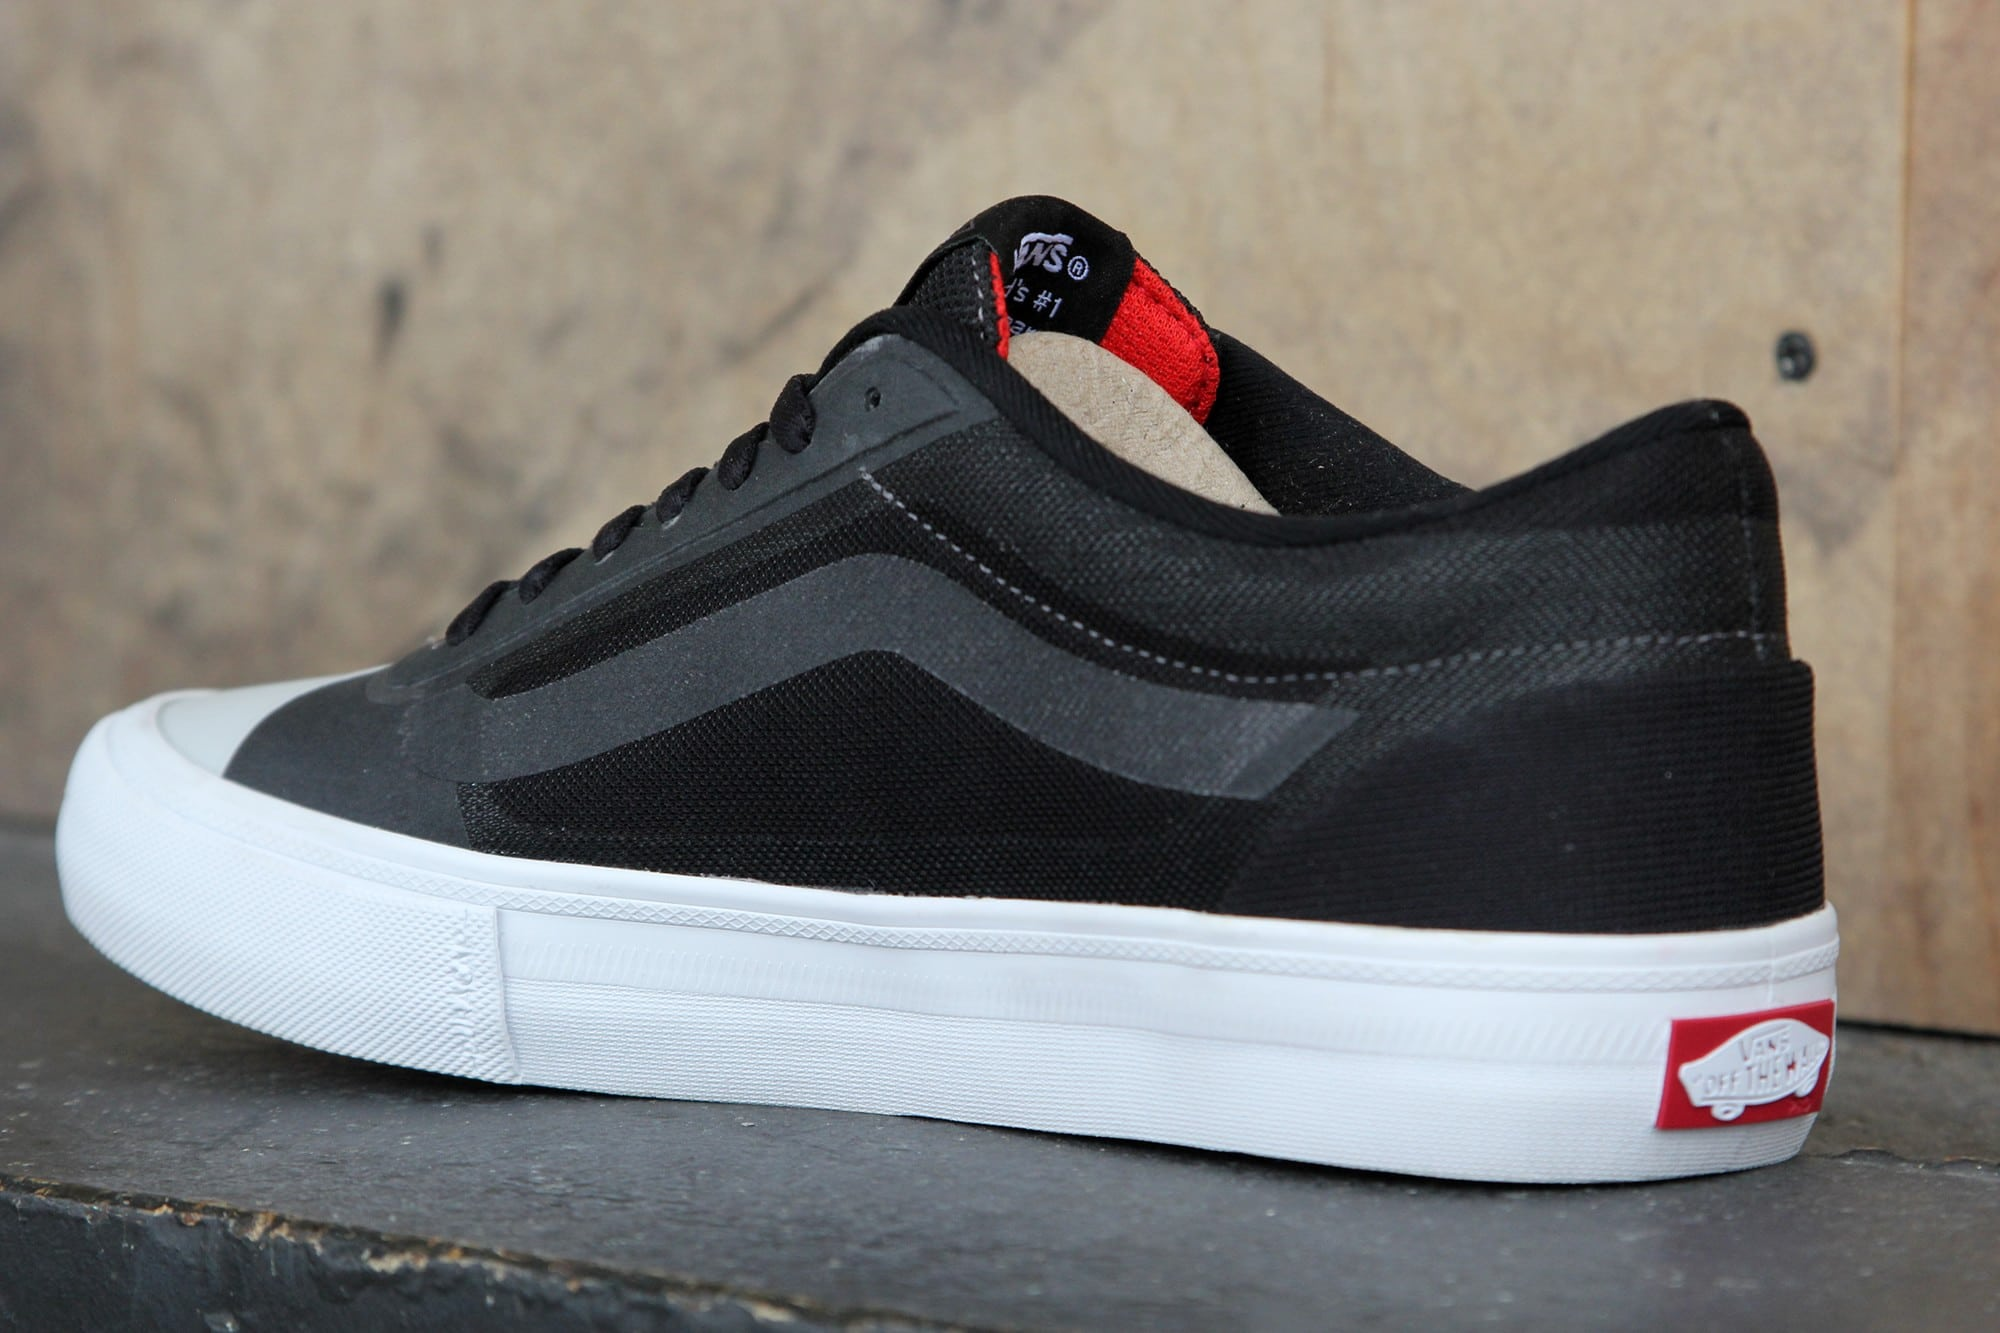 Skate Shoes Like Vans